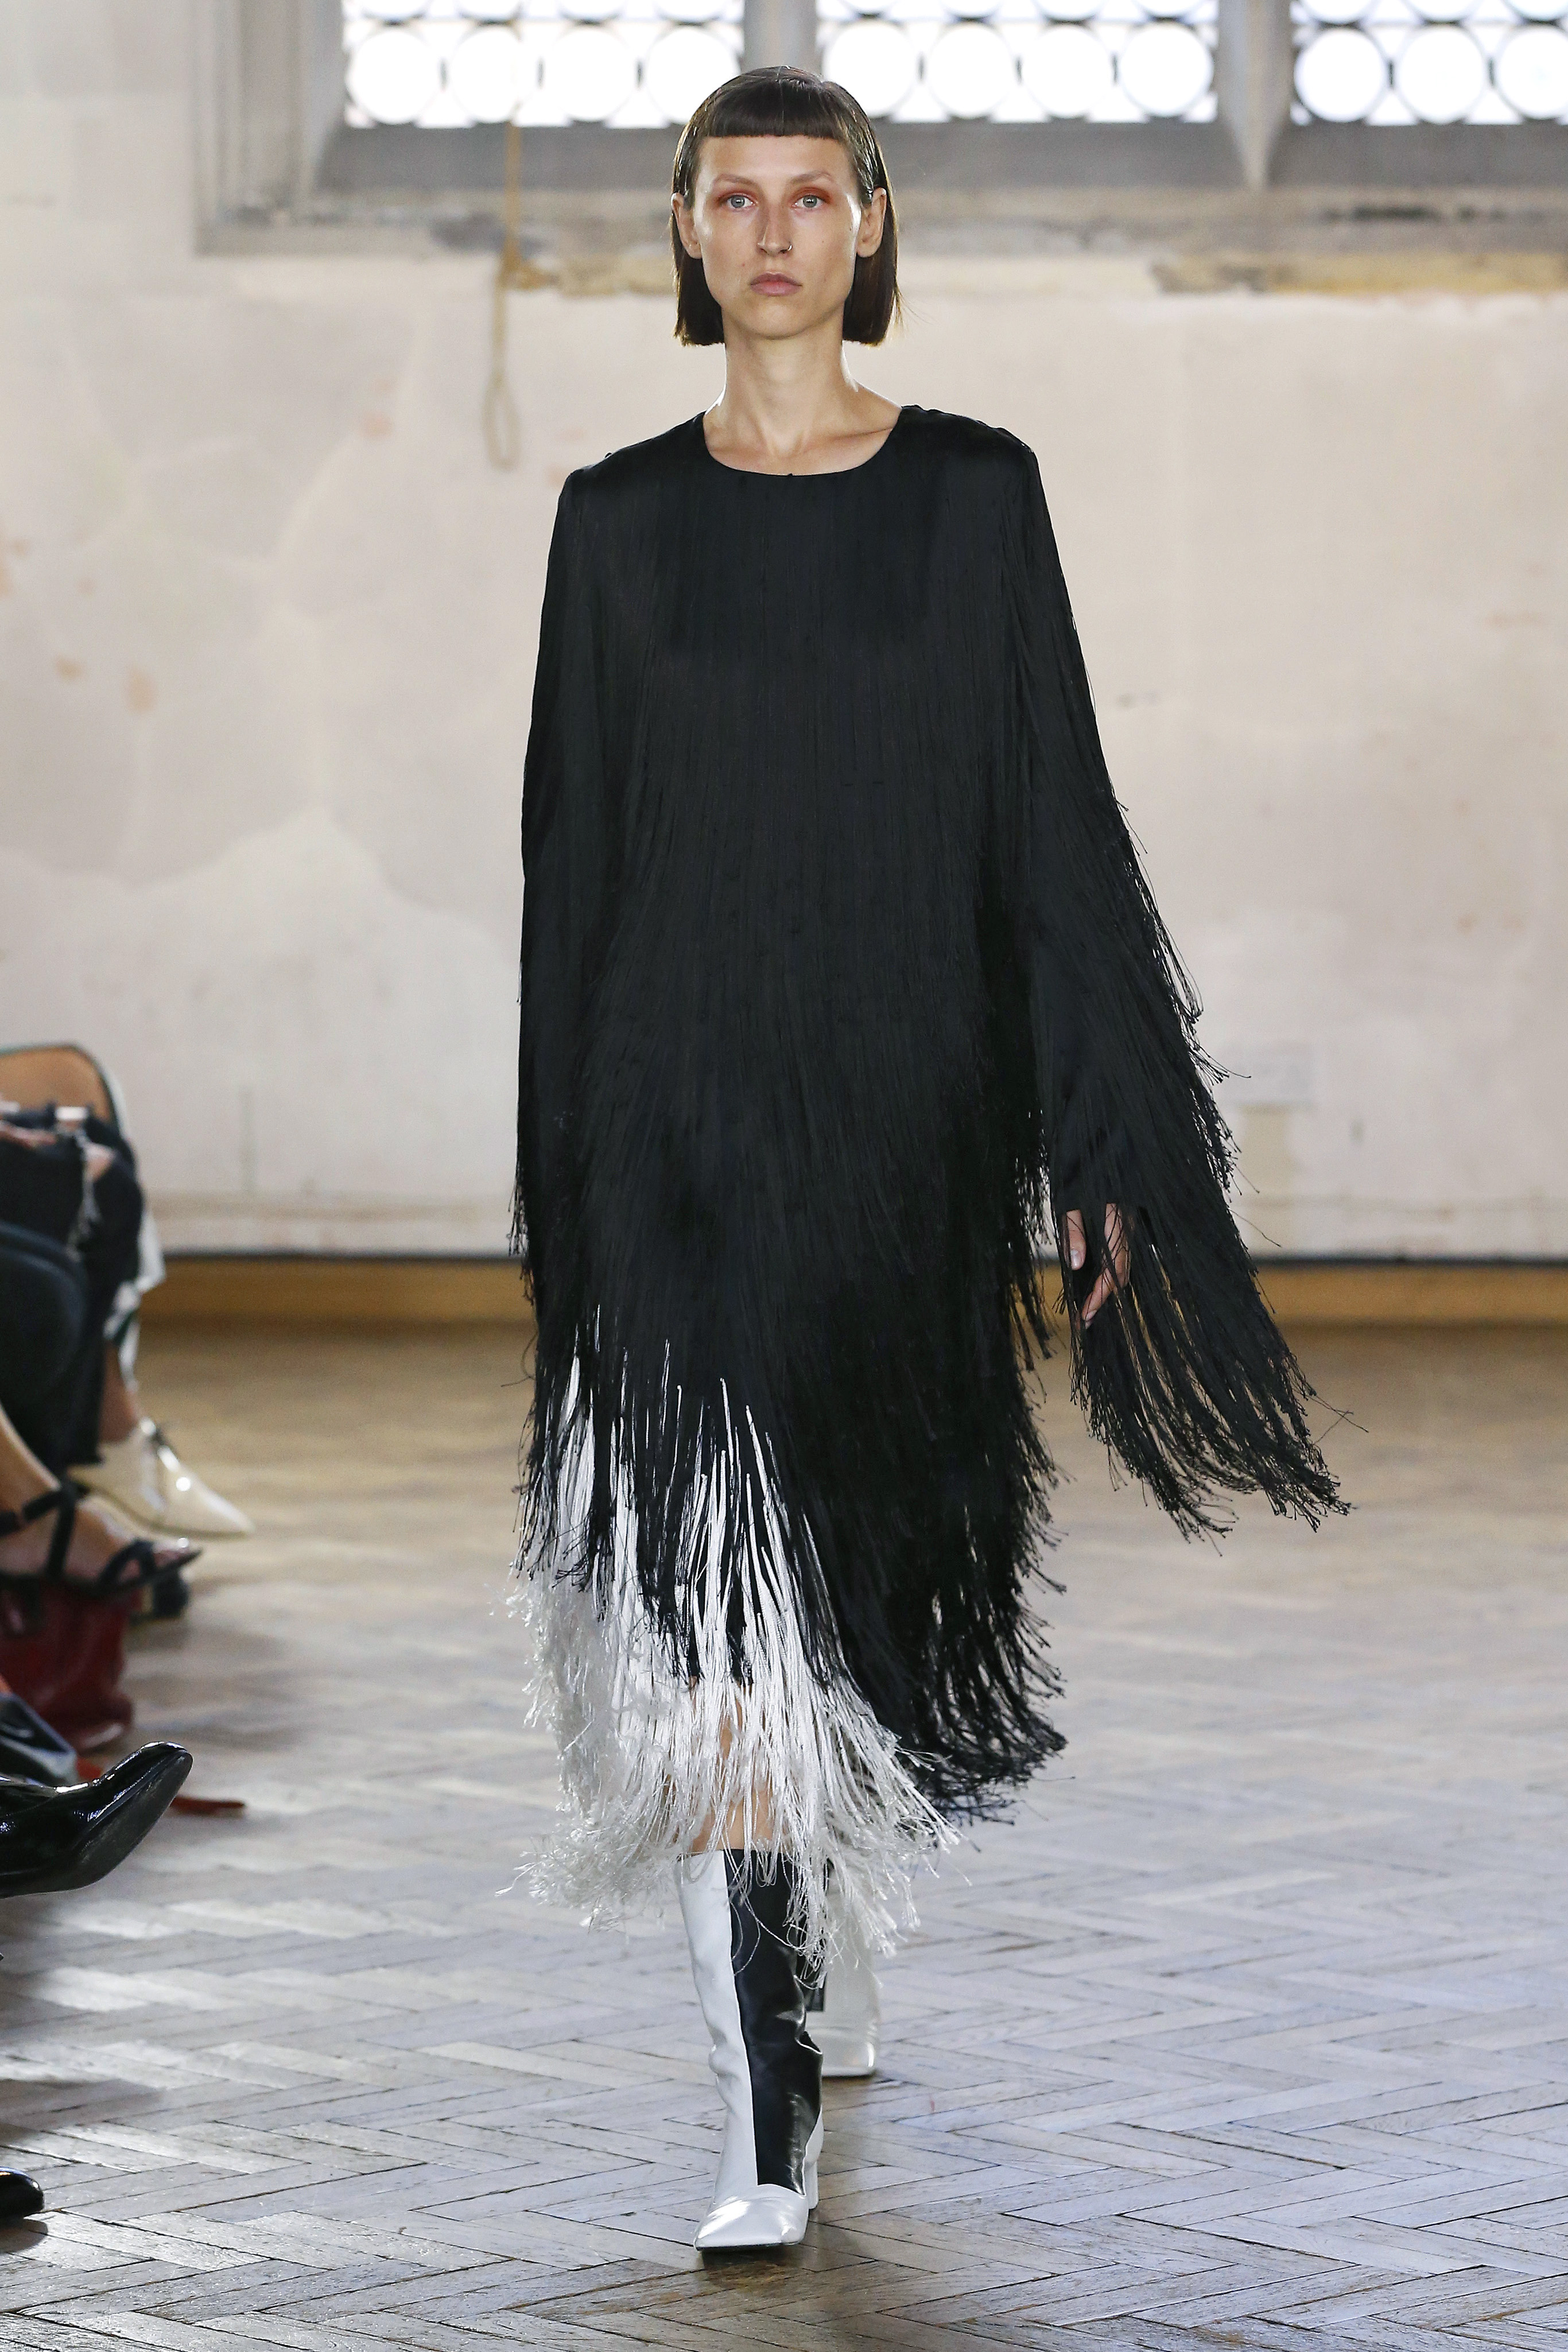 Monochrome Fringe Dress by Sharon Wauchob on curated-crowd.com